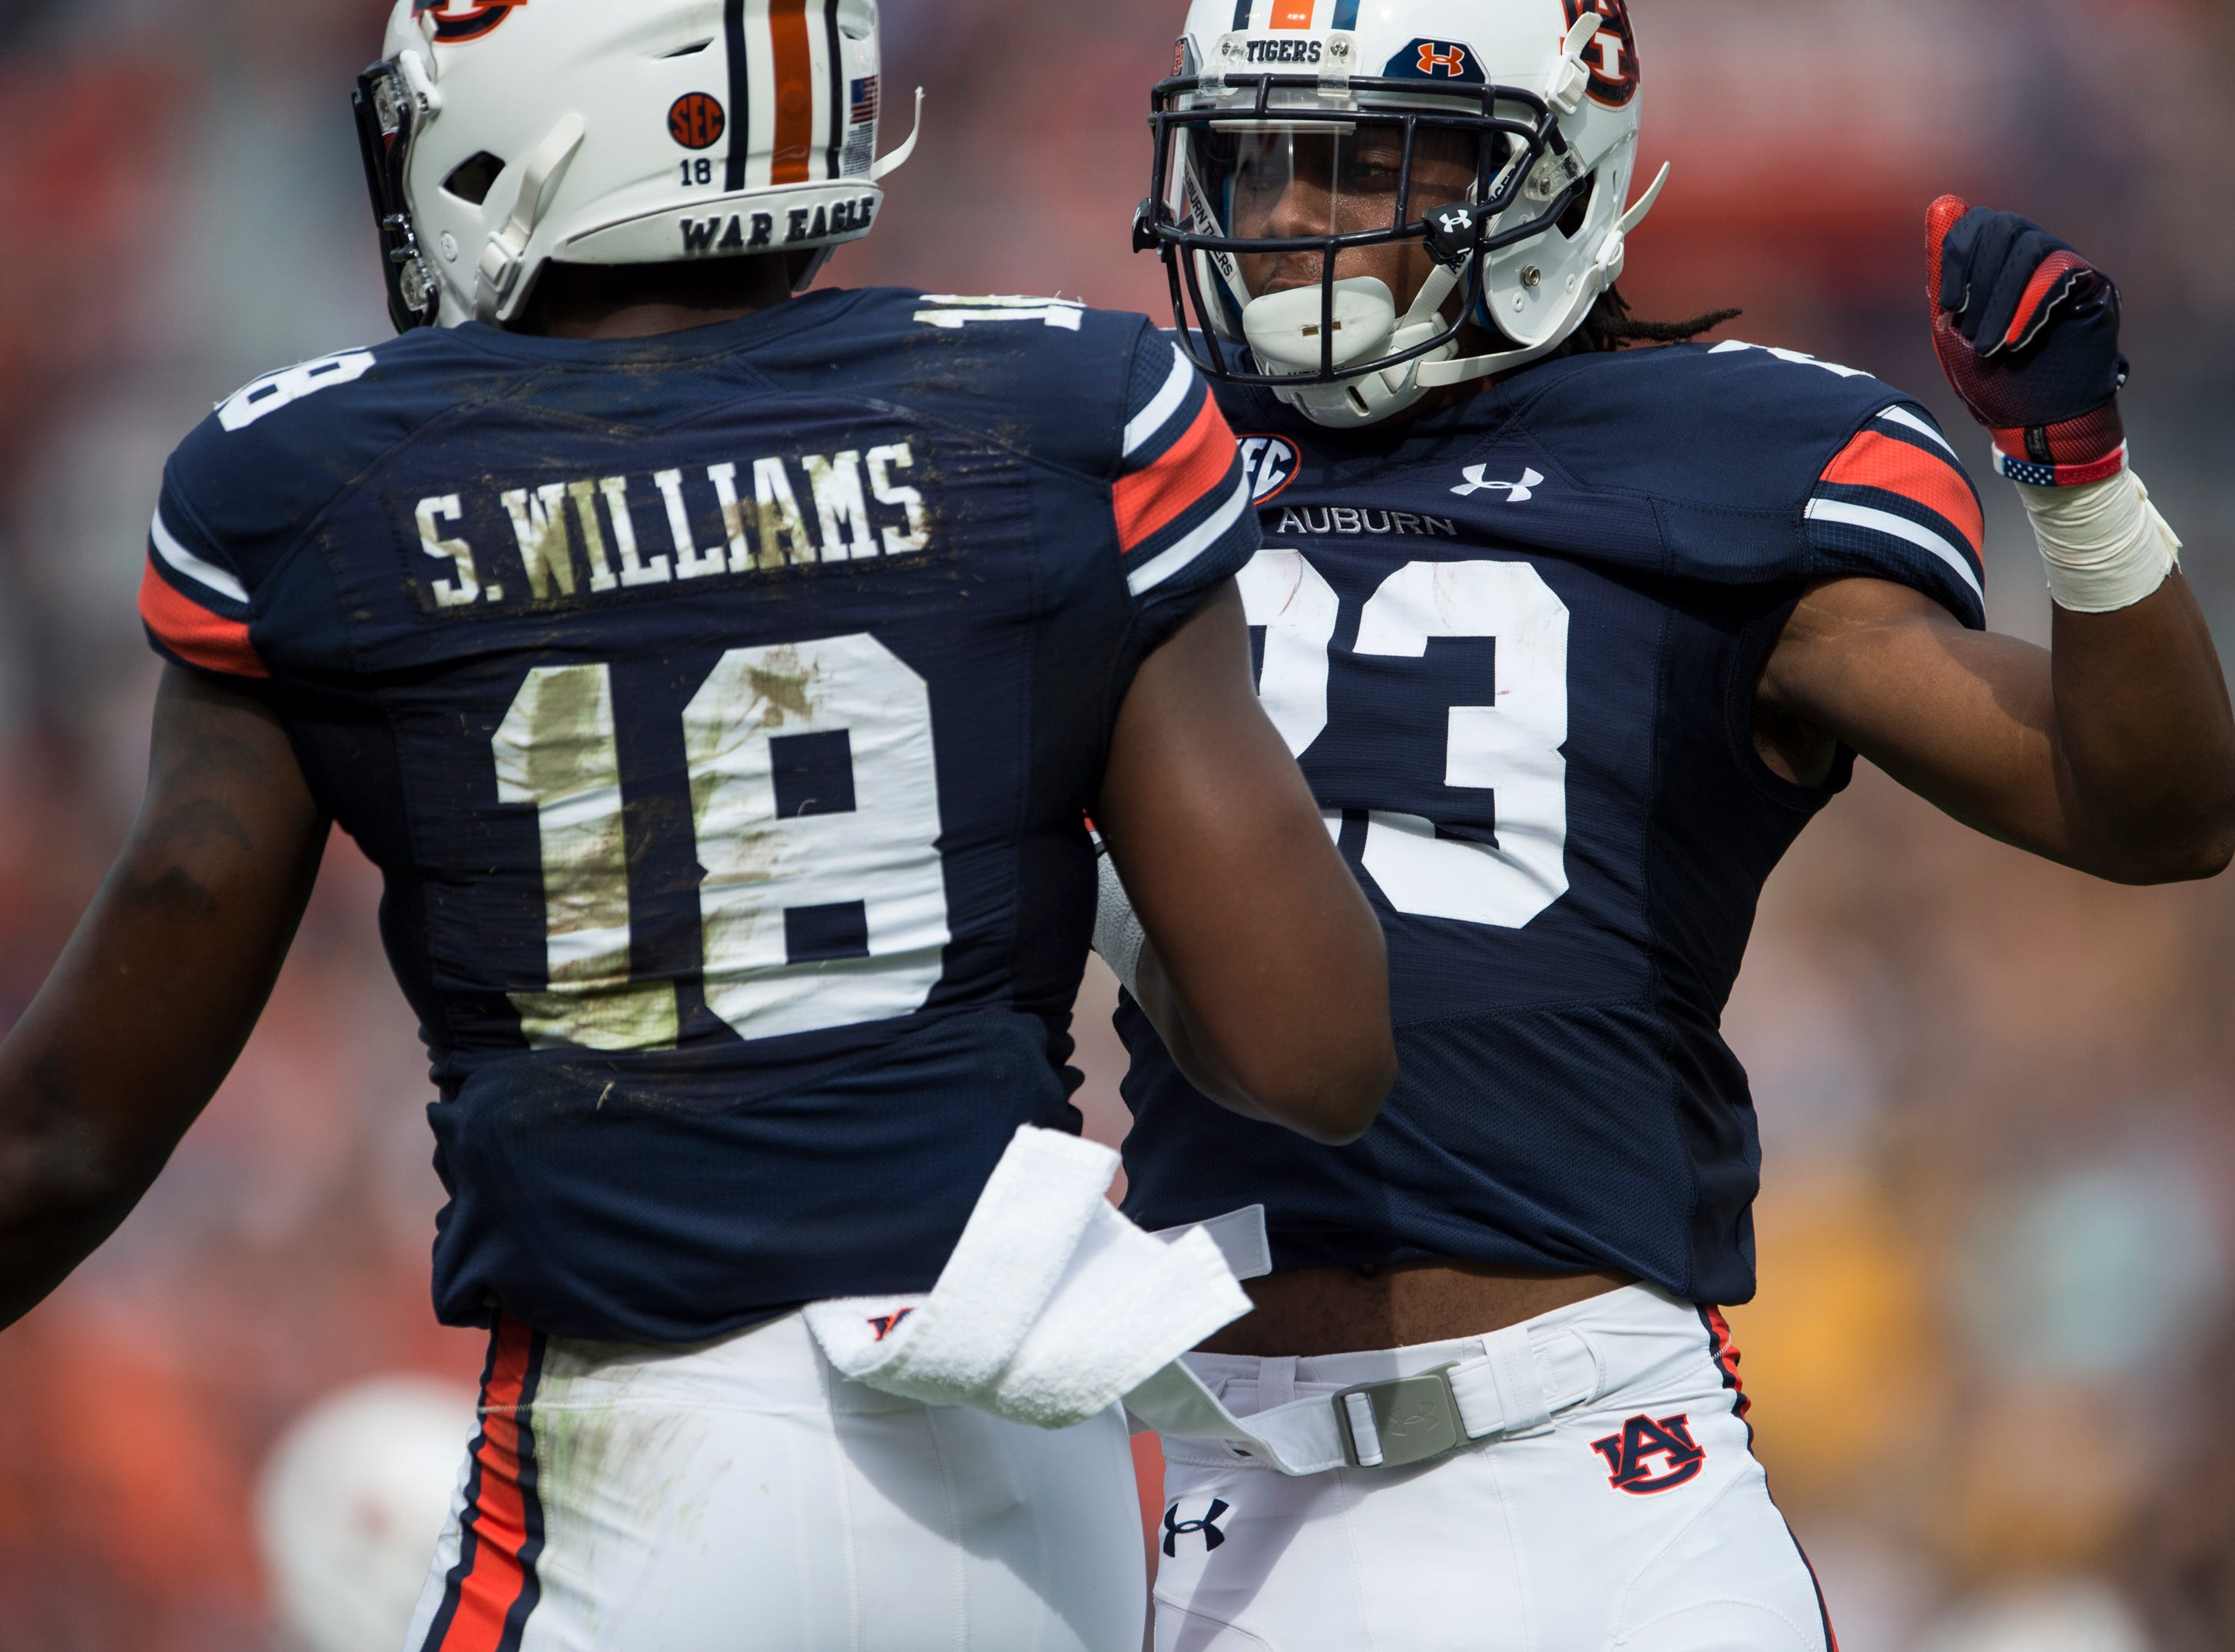 Auburn's Seth Williams (18) and Auburn's Ryan Davis (23) celebrates Williams touchdown catch at Jordan-Hare Stadium in Auburn, Ala., on Saturday, Sept. 29, 2018. Auburn leads Southern Miss 14-3, the game went into a weather delay with 4:27 left in the second quarter.